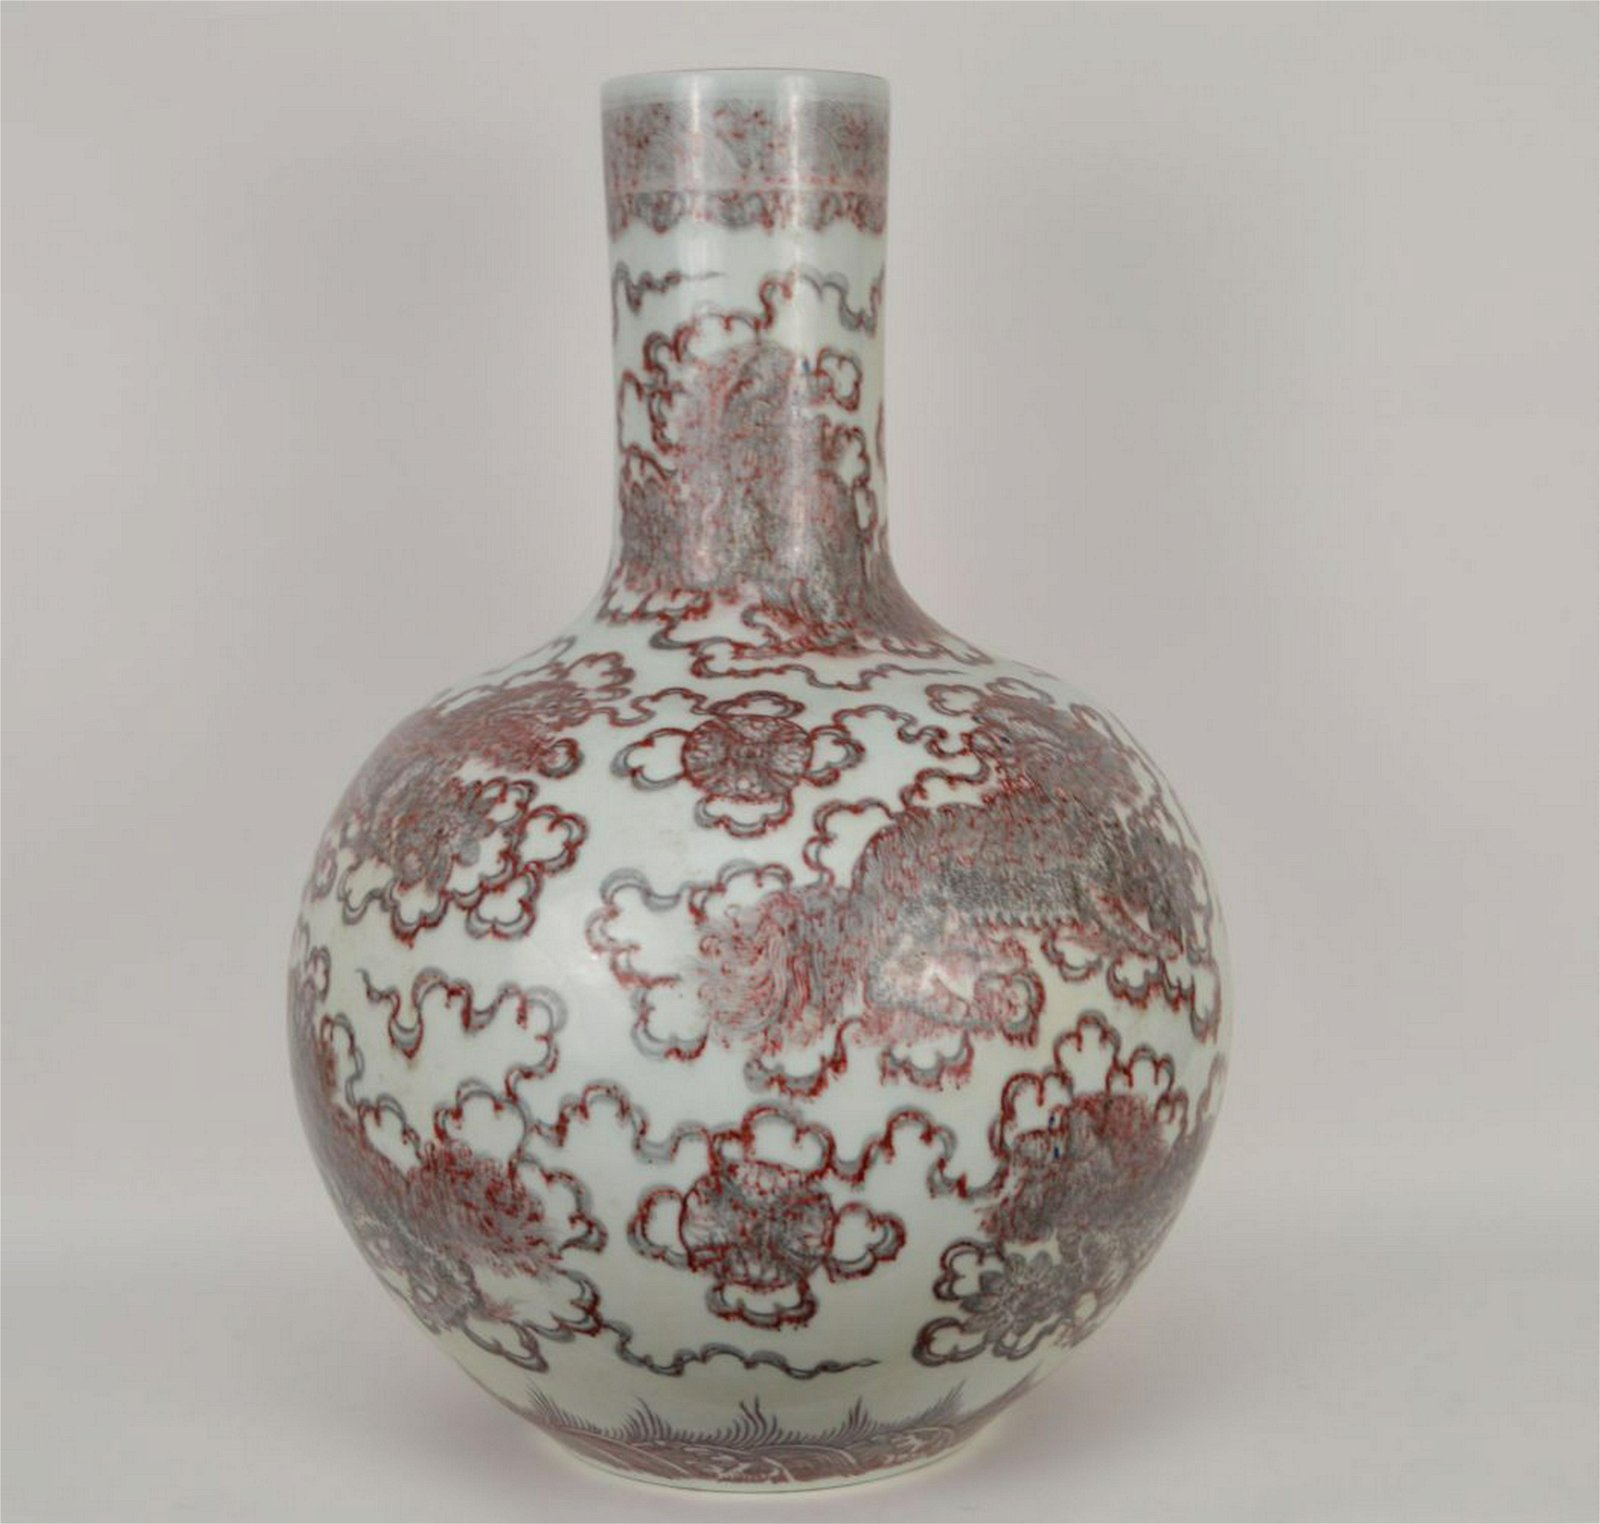 LARGE CHINESE PORCELAIN VASE WITH IRON RED DECORATION